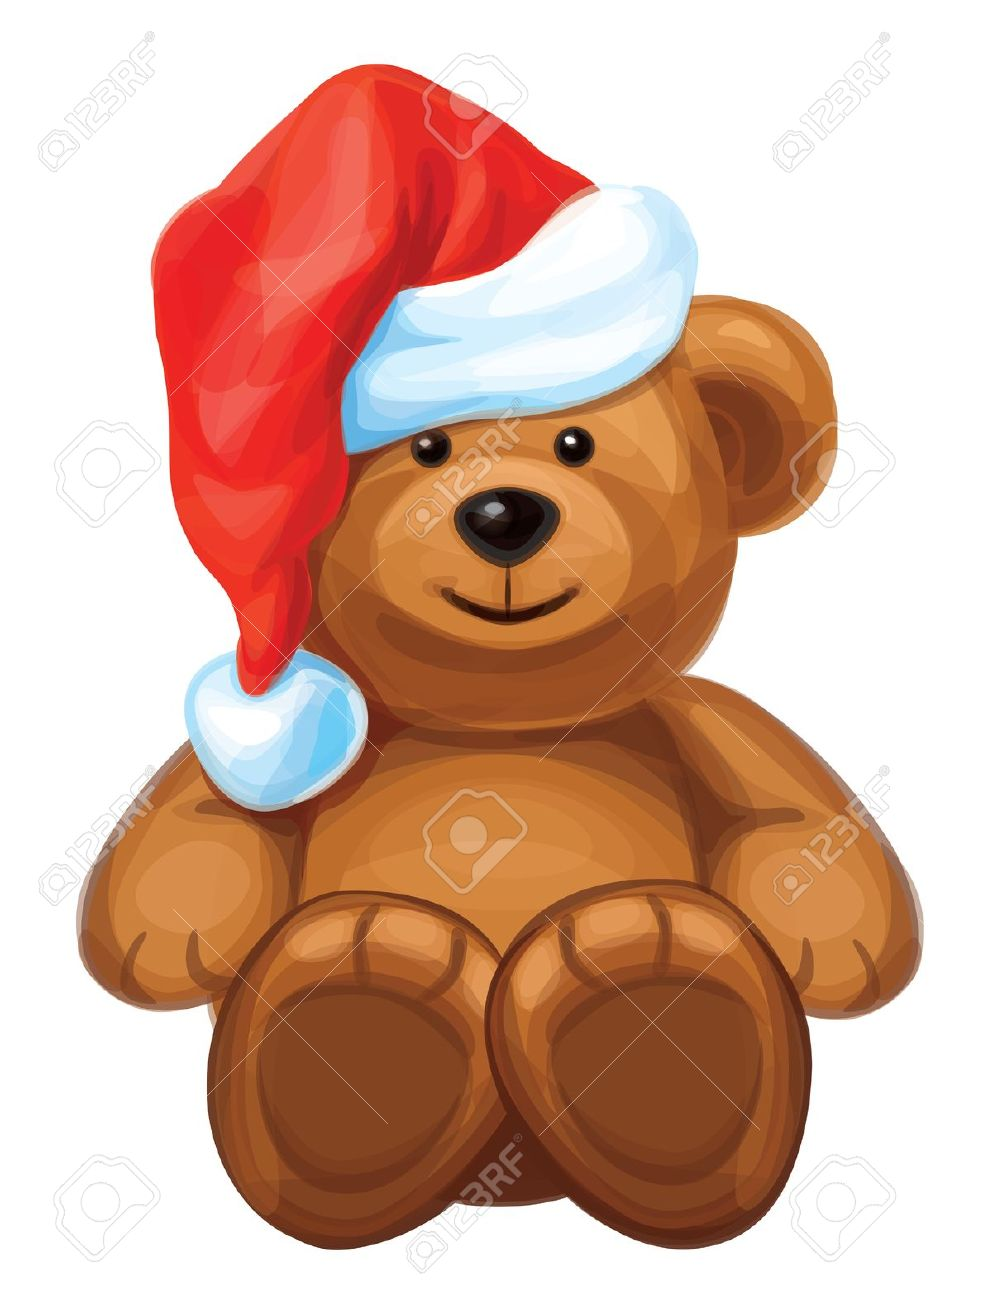 Christmas Teddy Bear Head Clipart Small.